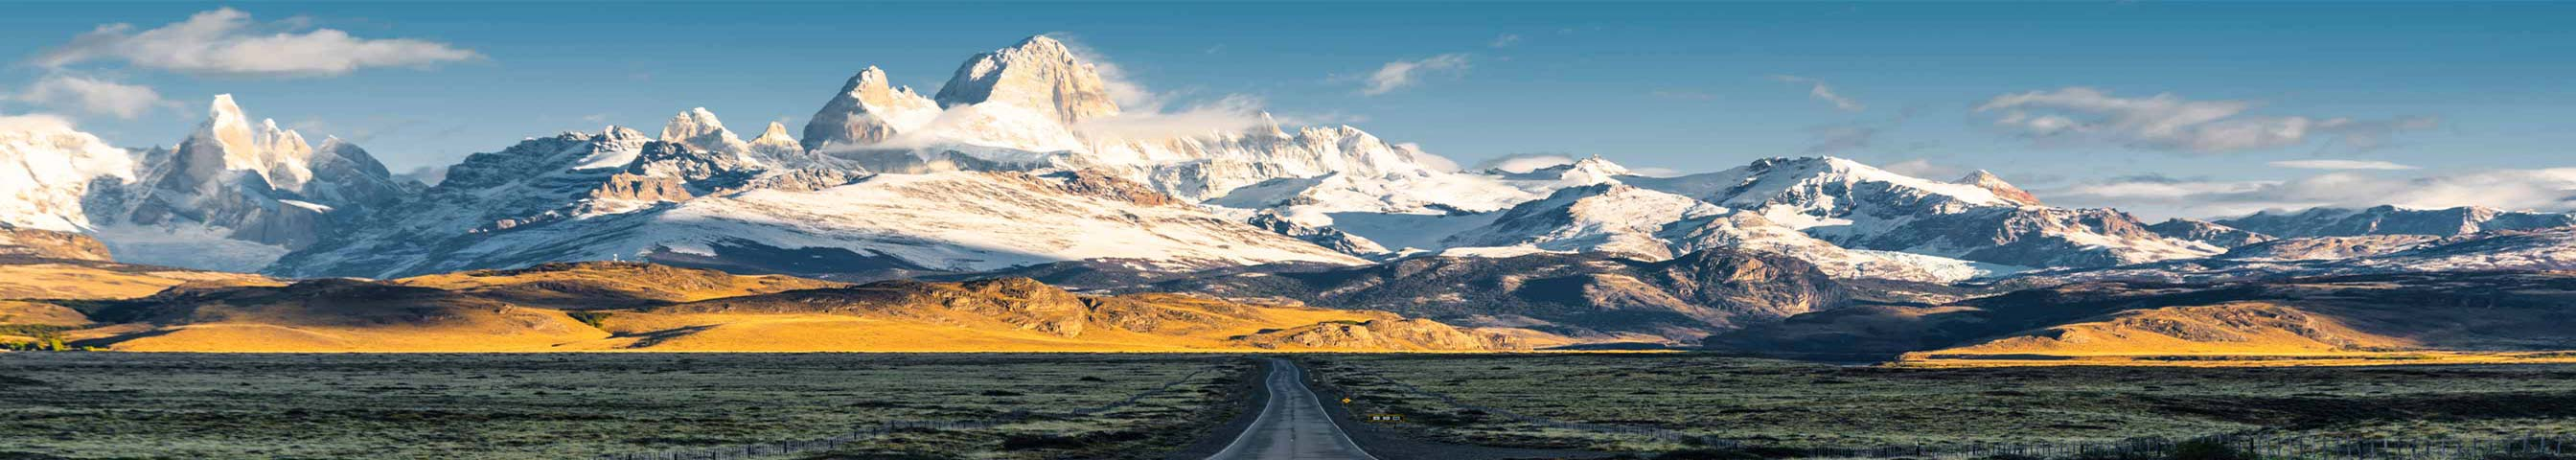 A backdrop of icy mountains, with a road central in view that leads to the craggy vista